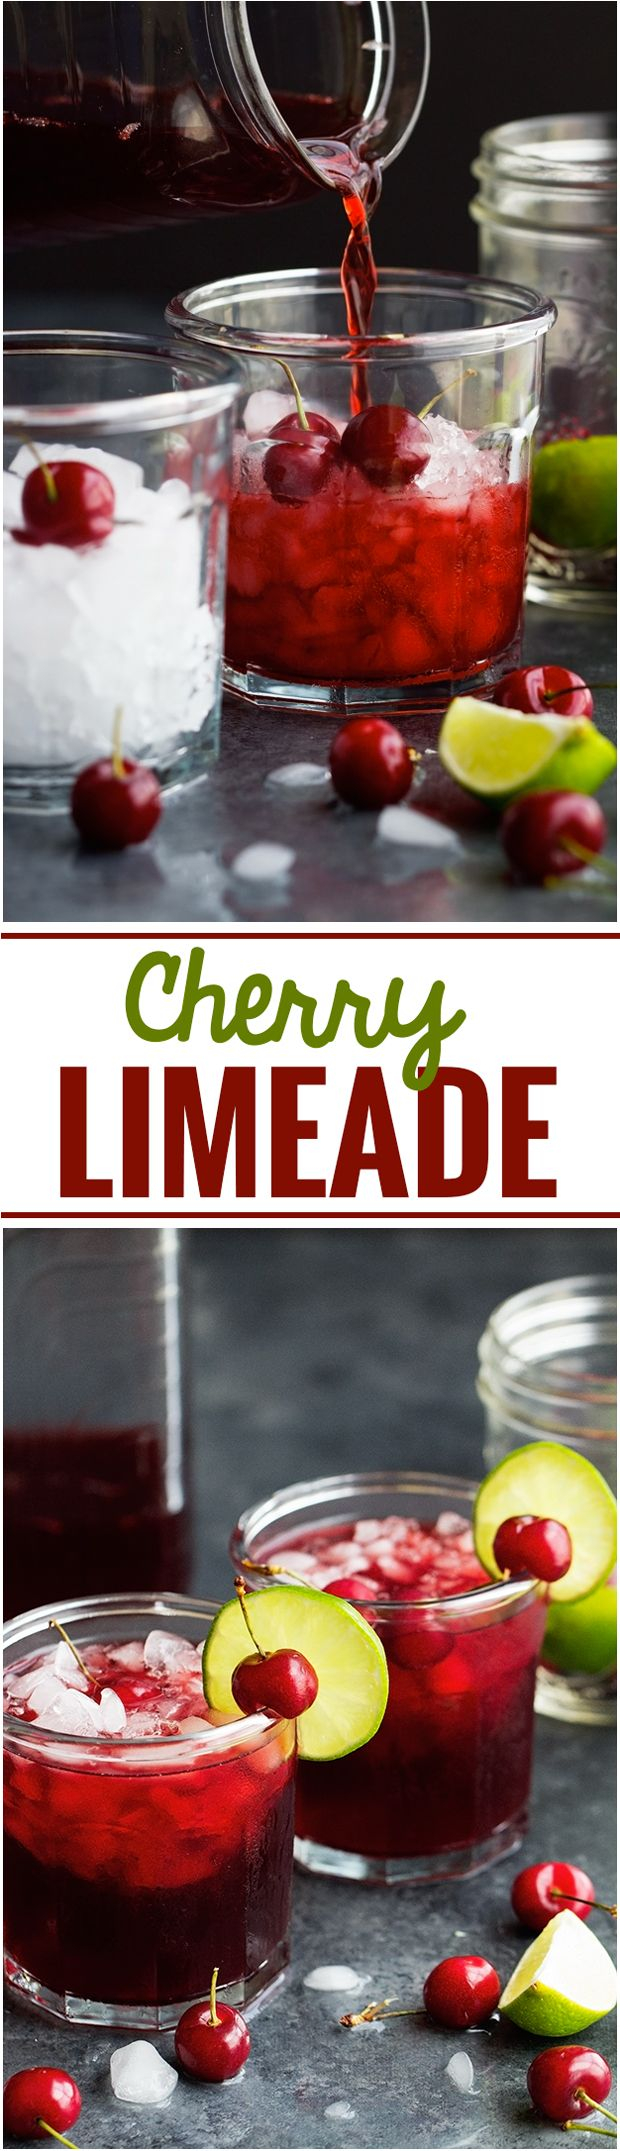 Cherry Limeade - Simple, bright, and refreshing. Perfect for summer days and takes just 5 minute to make! #cherrylimeade #limeade #lemonade | Littlespicejar.com